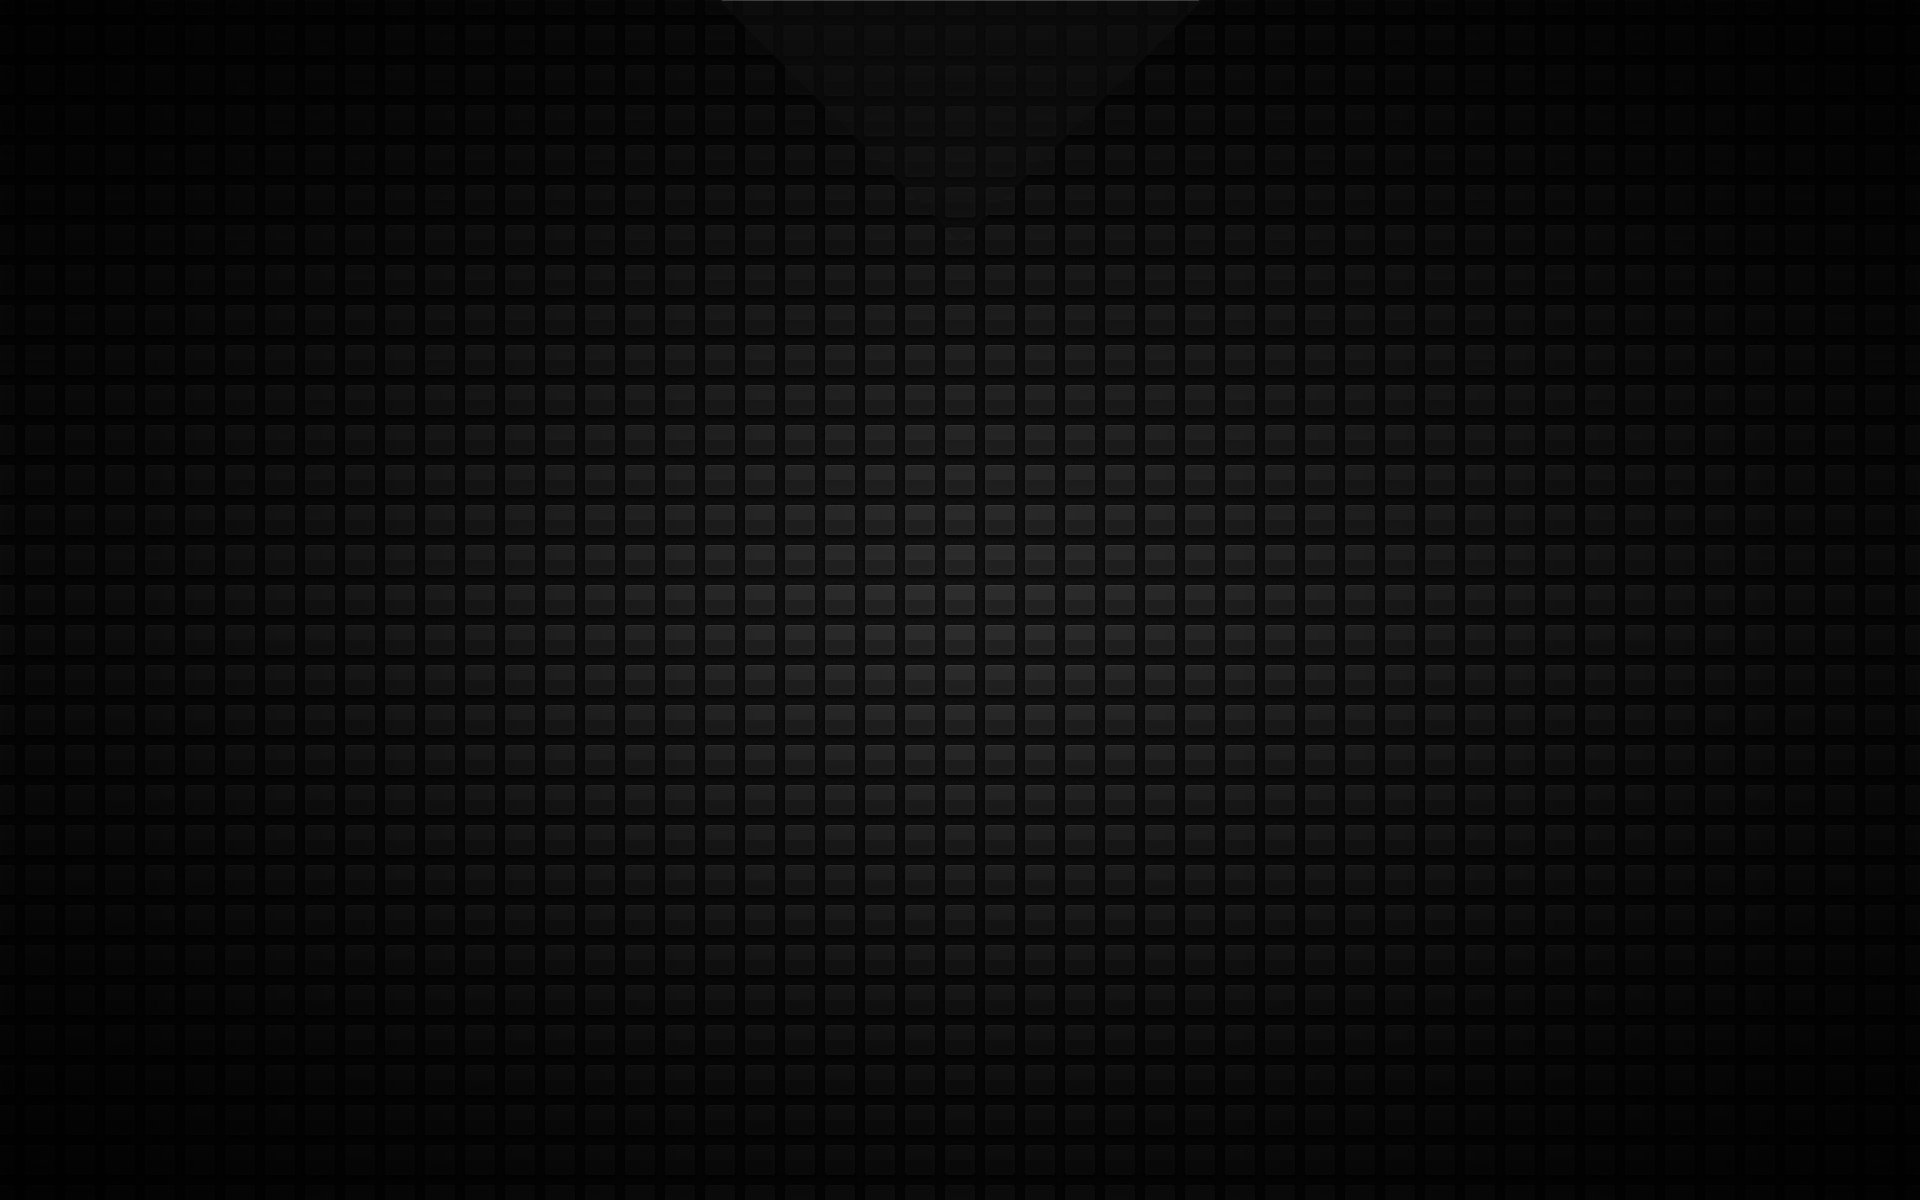 Black Wallpaper Background Download Wallpaper with 1920x1200 1920x1200